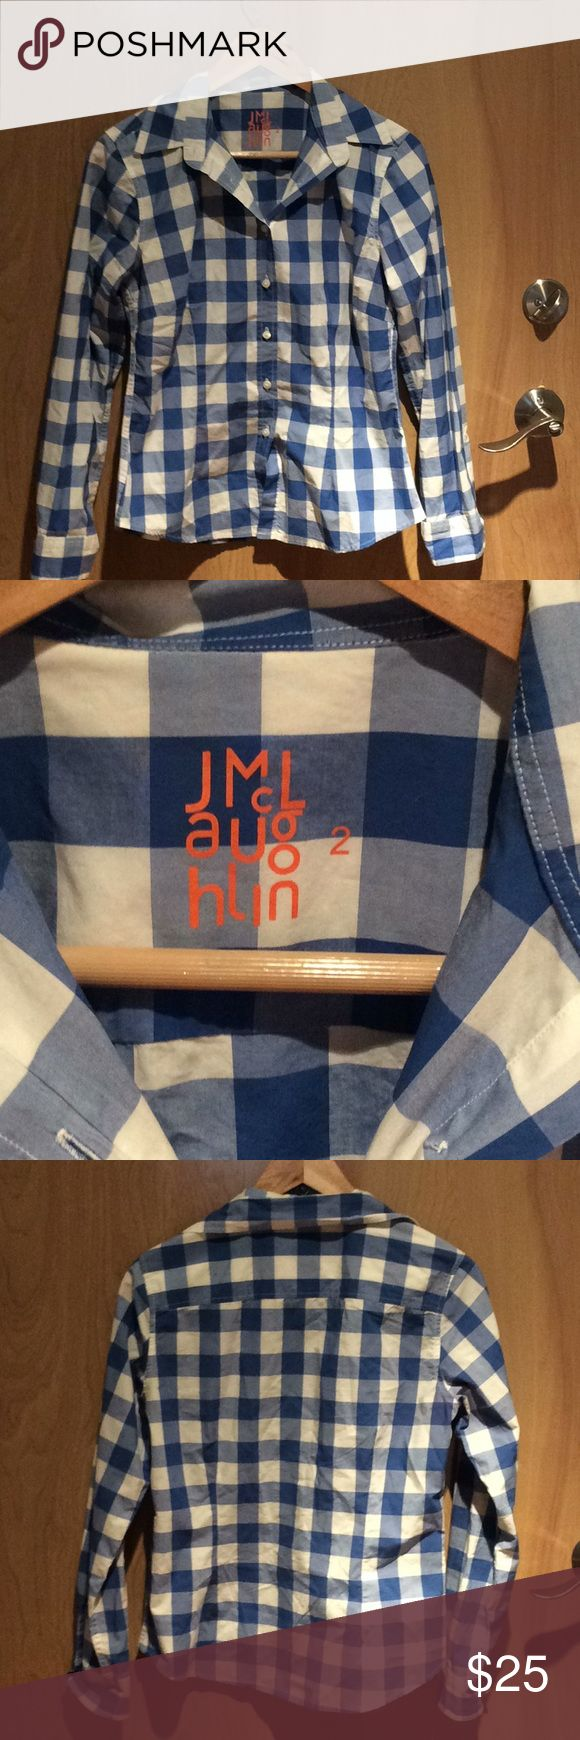 J McLaughlin Button Down Shirt Sz 2 J McLaughlin Button Down Checkered shirt. 100% cotton. J McLaughlin Tops Button Down Shirts